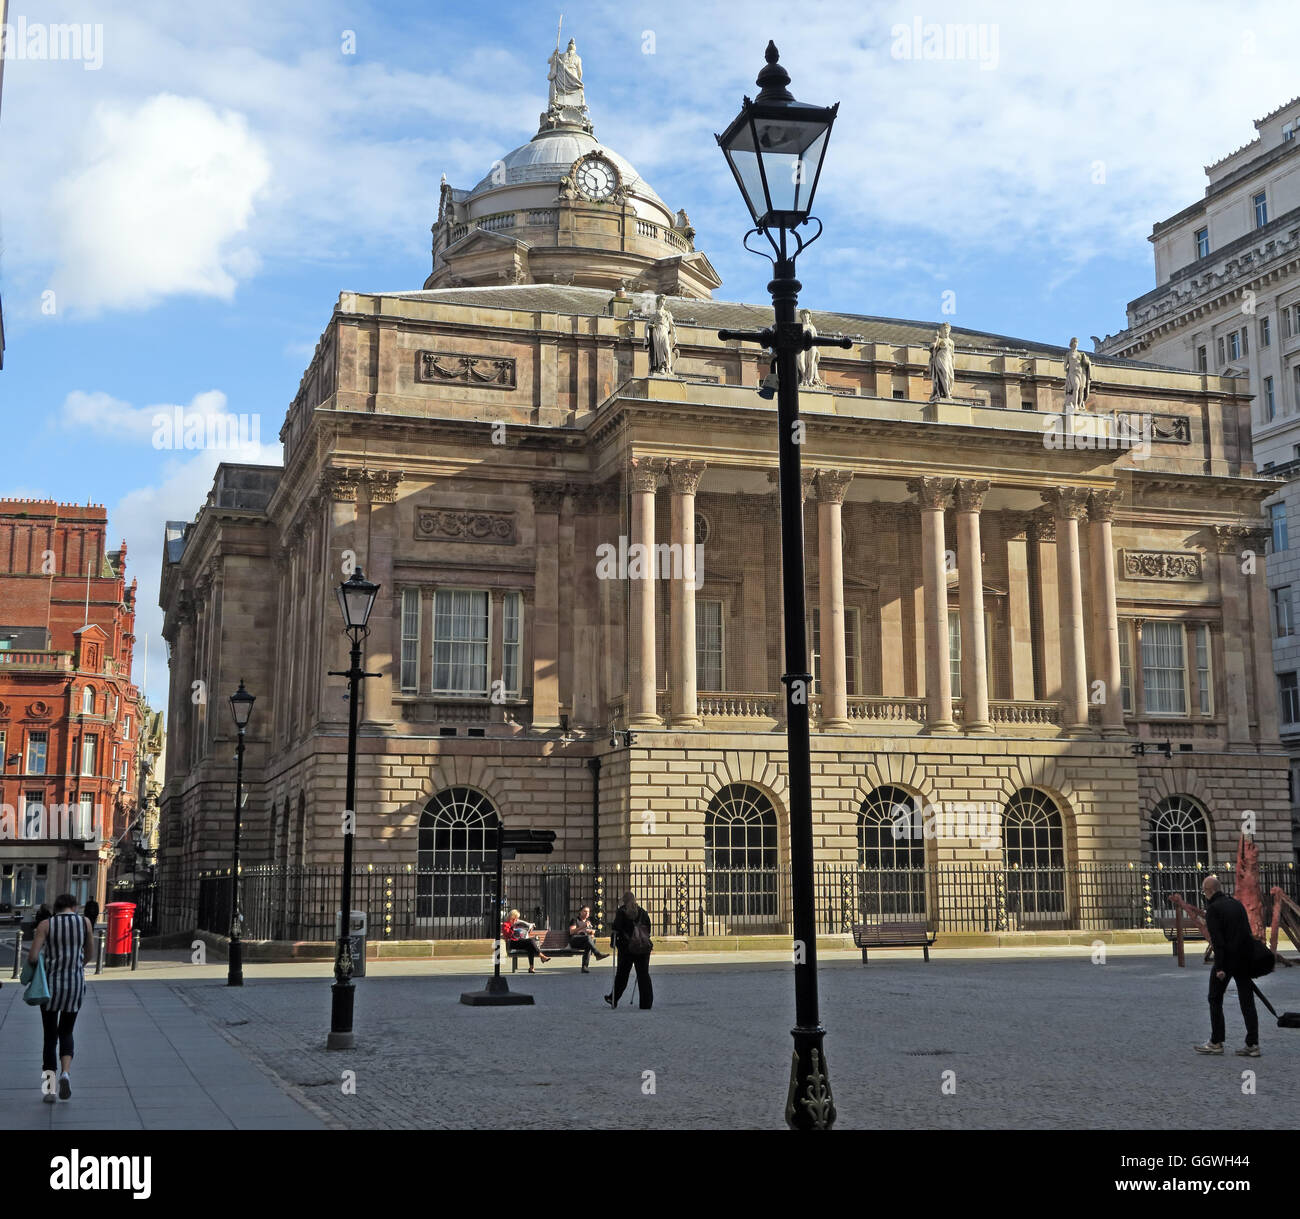 Townhall,Merseyside,Street,building,structure,listed,buildings,18th,century,stone,Lord,Mayors,Mayor,parlour,Council,chamber,local,government,Corporation,James,Wyatt,Castle,Street,tour,licensed,for,weddings,slate,lead,roof,dome,18th Century,Buildings Of England,Town Hall,Dale St,Dale Street,GoTonySmith,@HotpixUK,HotpixUK,United,Kingdom,GB,English,British,domed,clock,square,exchange,flags,Buy Pictures of,Buy Images Of,Images of,Stock Images,United Kingdom,Great Britain,Exchange Flags